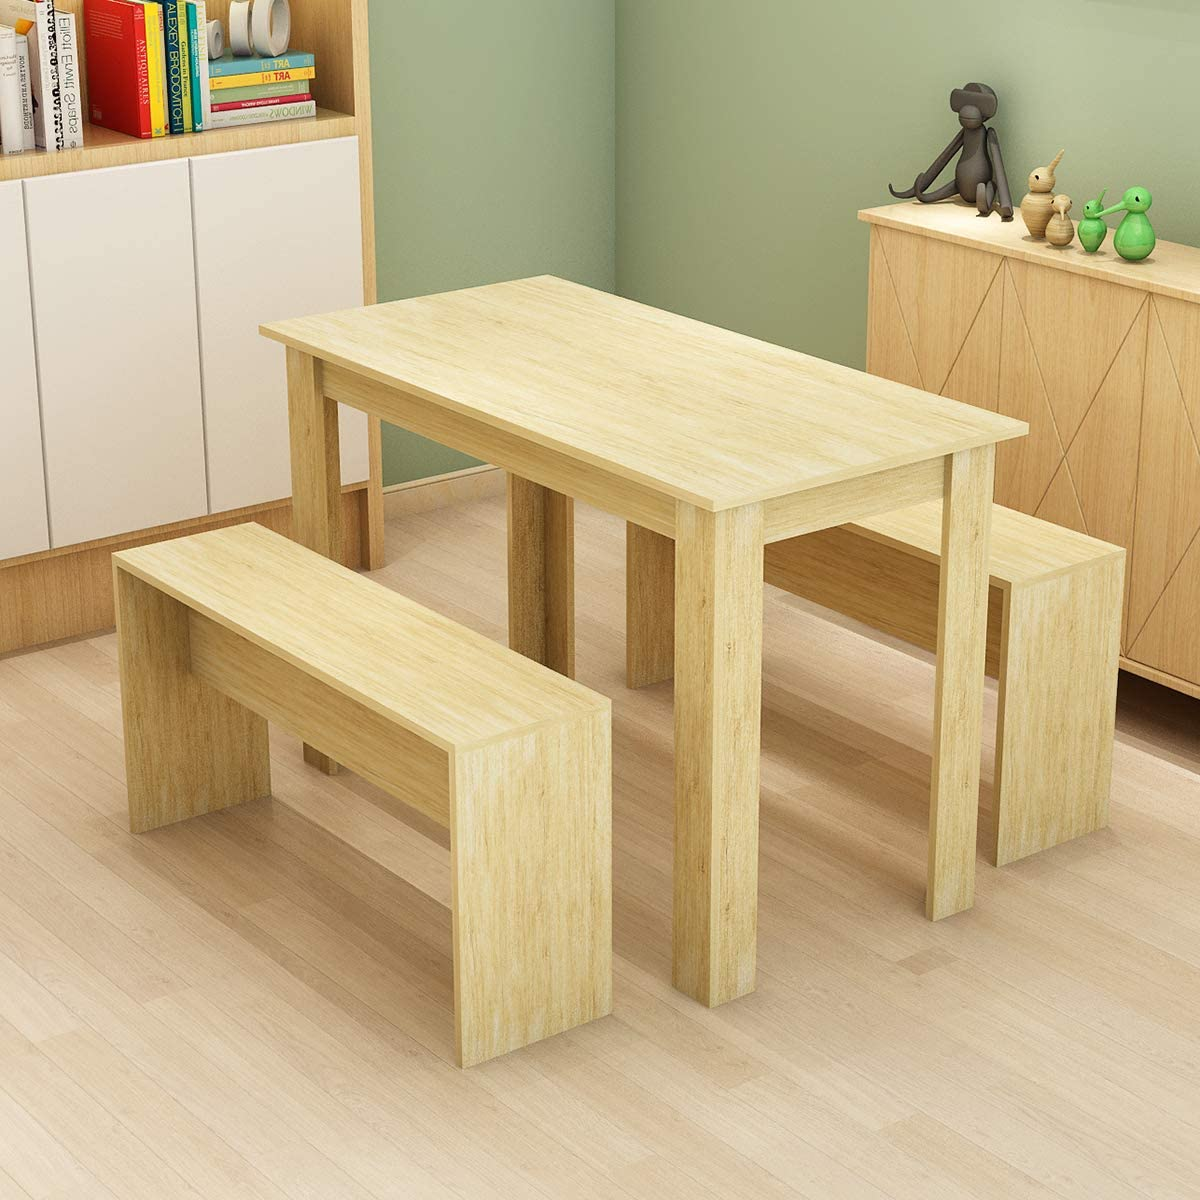 Bespivet 3 Piece Dining Room Set Wooden Dining Table And 2 Benches Set Oak Kitchen Furniture For Small Space 4 People Timber Garden Table Set Amazon Co Uk Kitchen Home